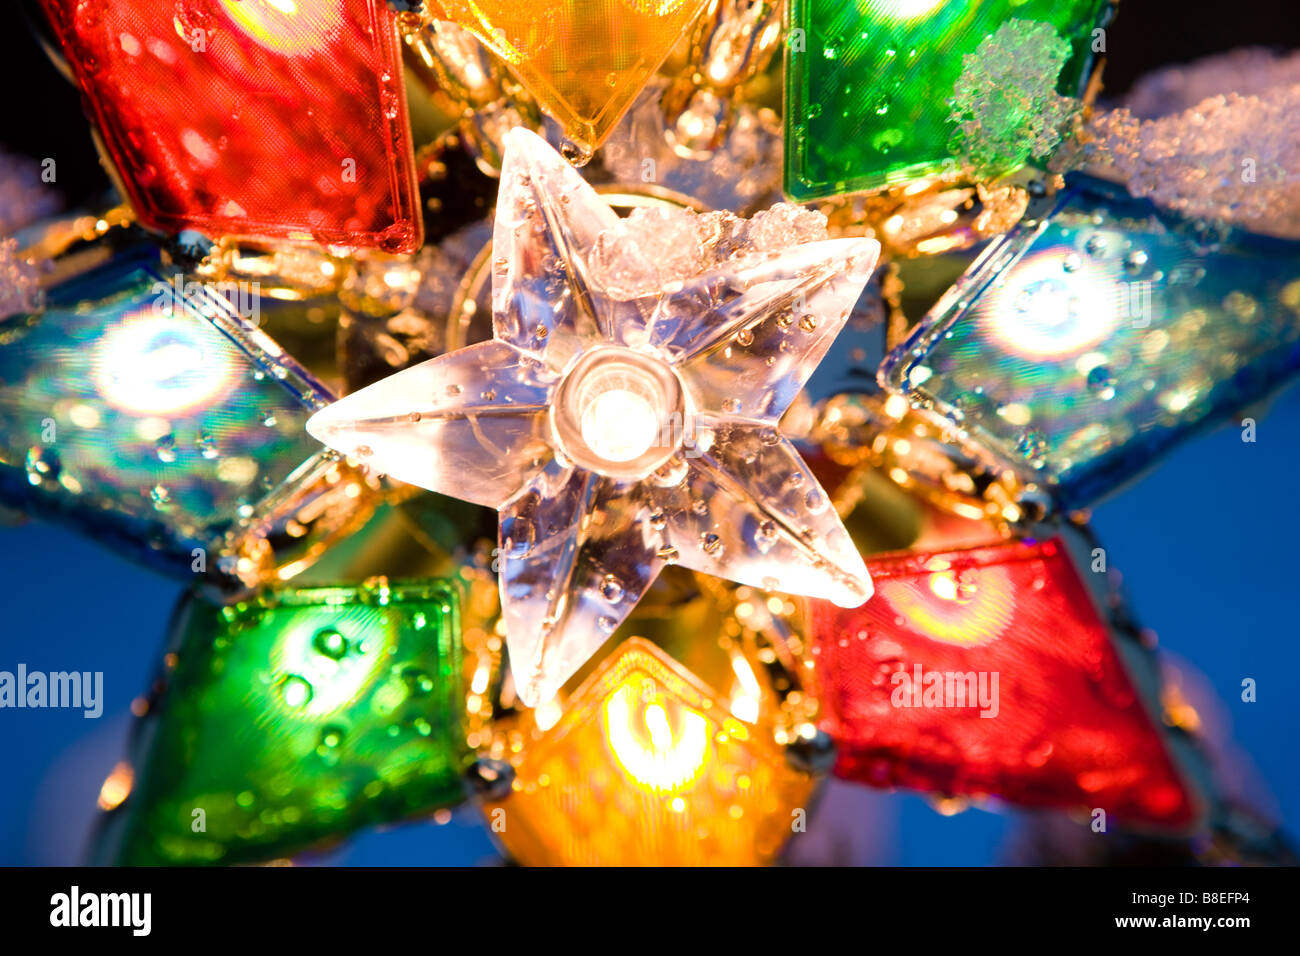 Close Up Of A Lighted Christmas Tree Star Ornament